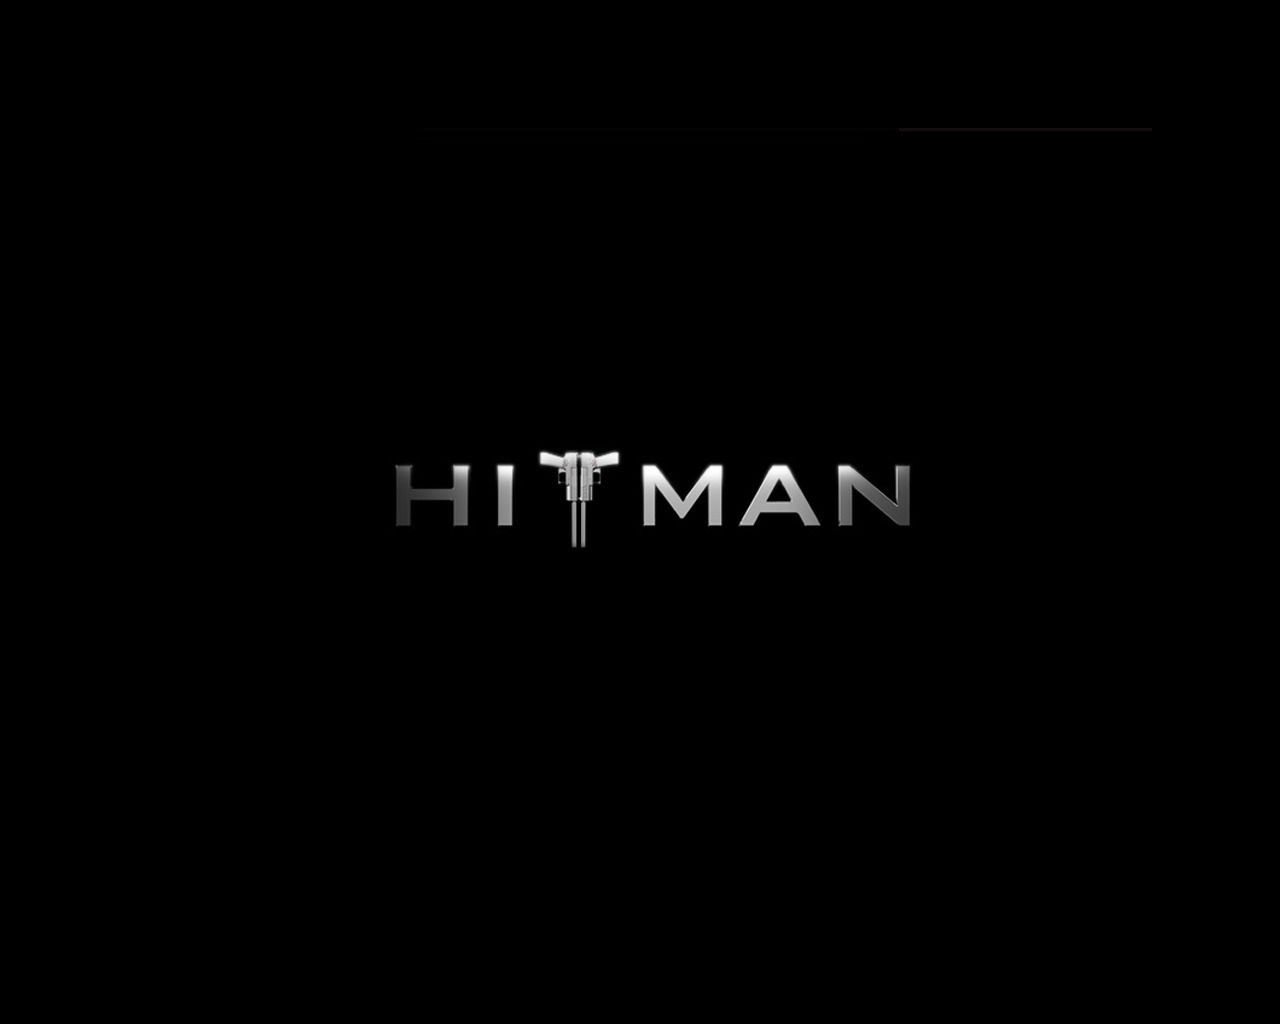 youll never believe what hitmans barcode really means 1280 1024